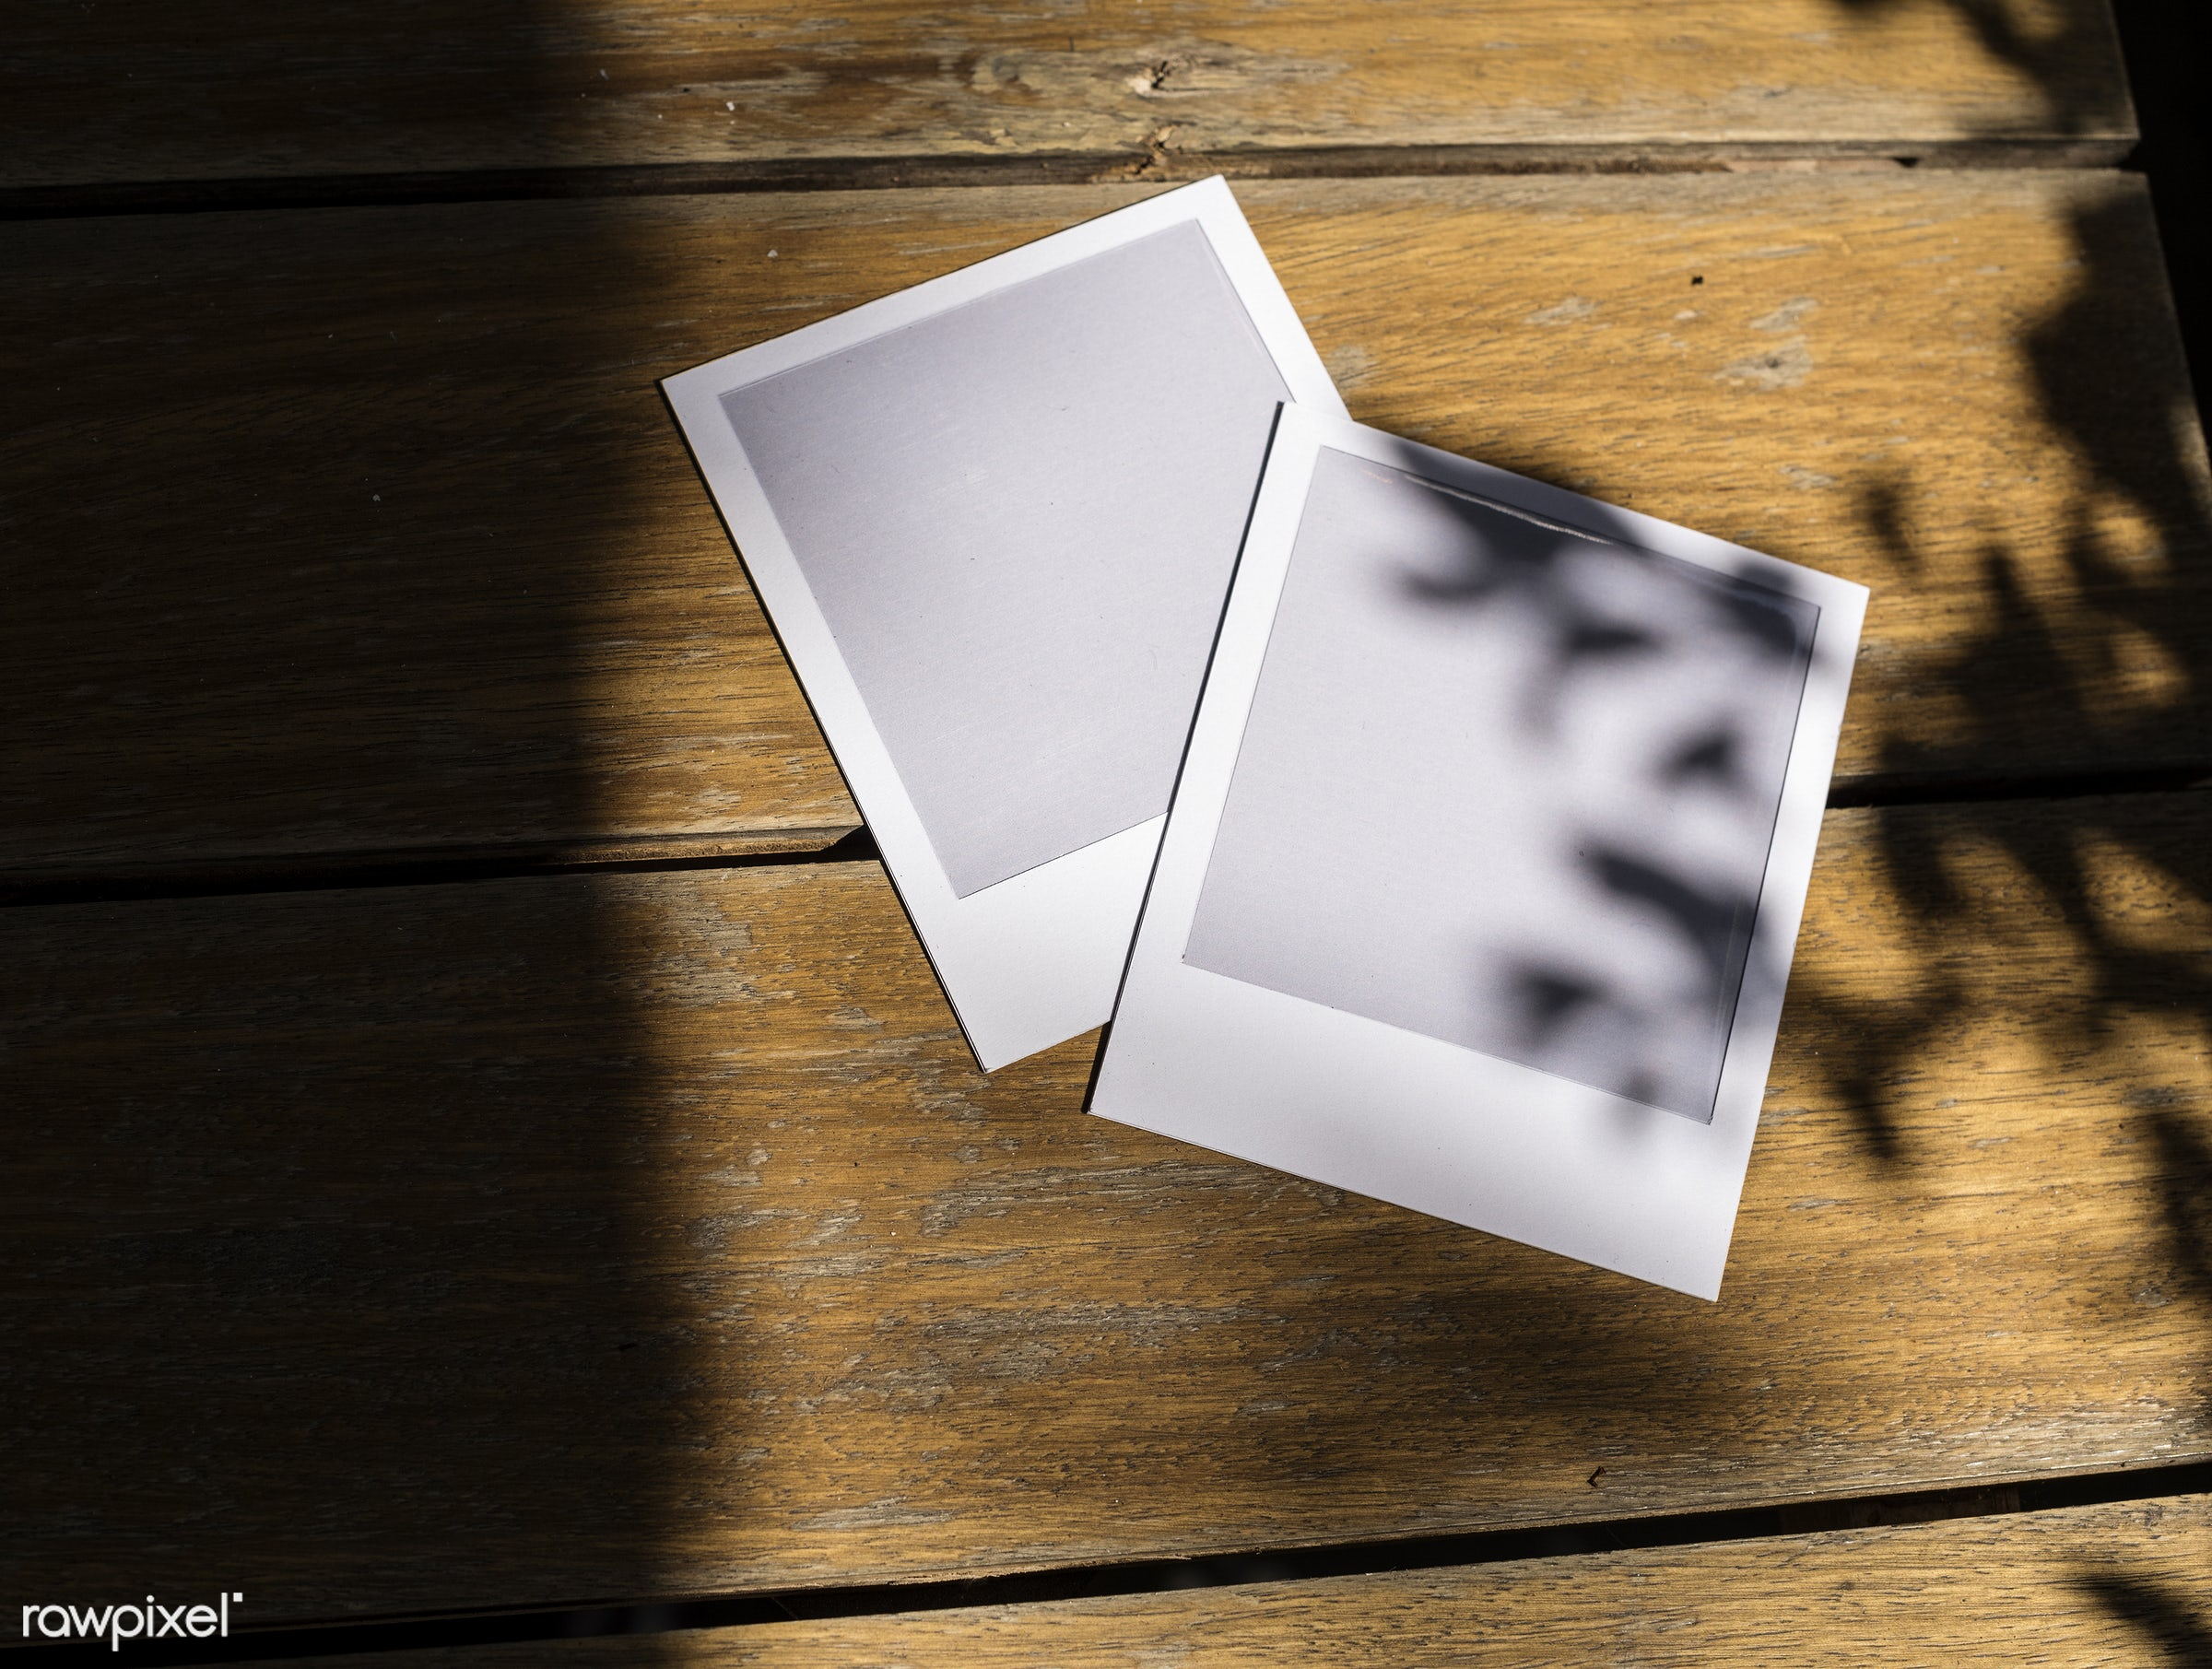 blank, border, closeup, copy space, empty, floor, frame, ground, image, instant, mock up, mockup, nobody, object, photos,...